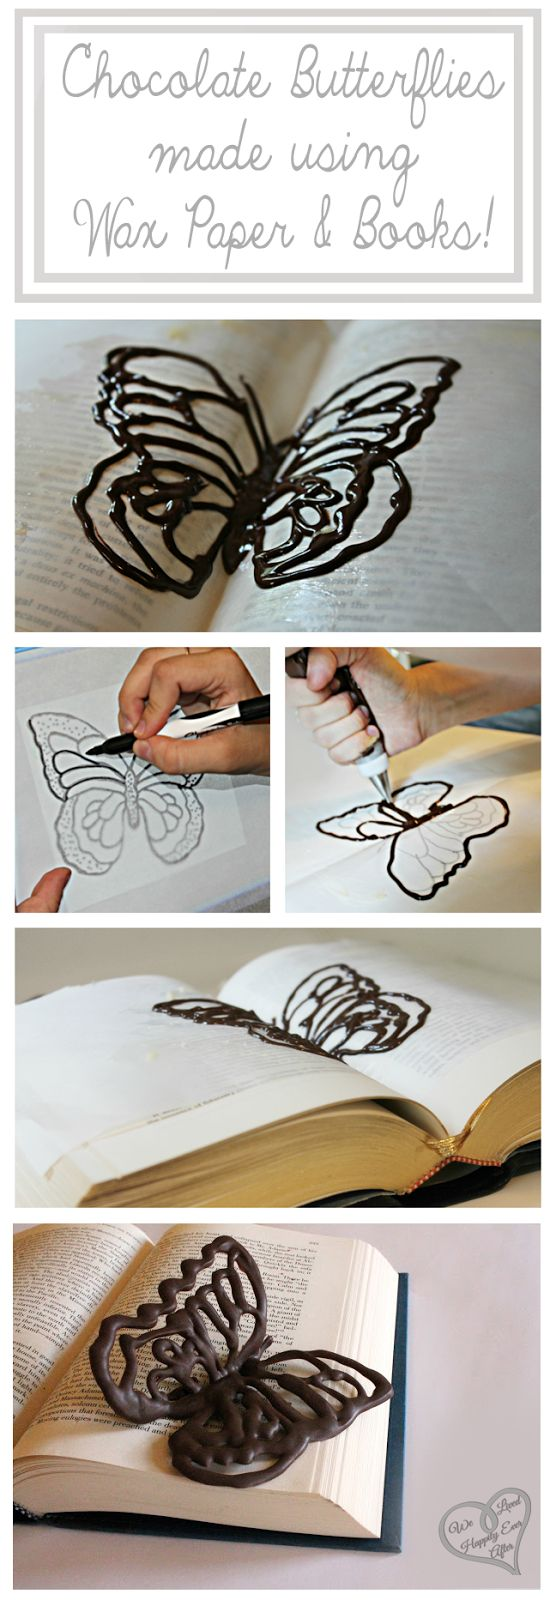 Make Chocolate Butterflies Using Wax Paper and Books! The Books give it a realistic pose. The Template/Pattern is included in the Tutorial!